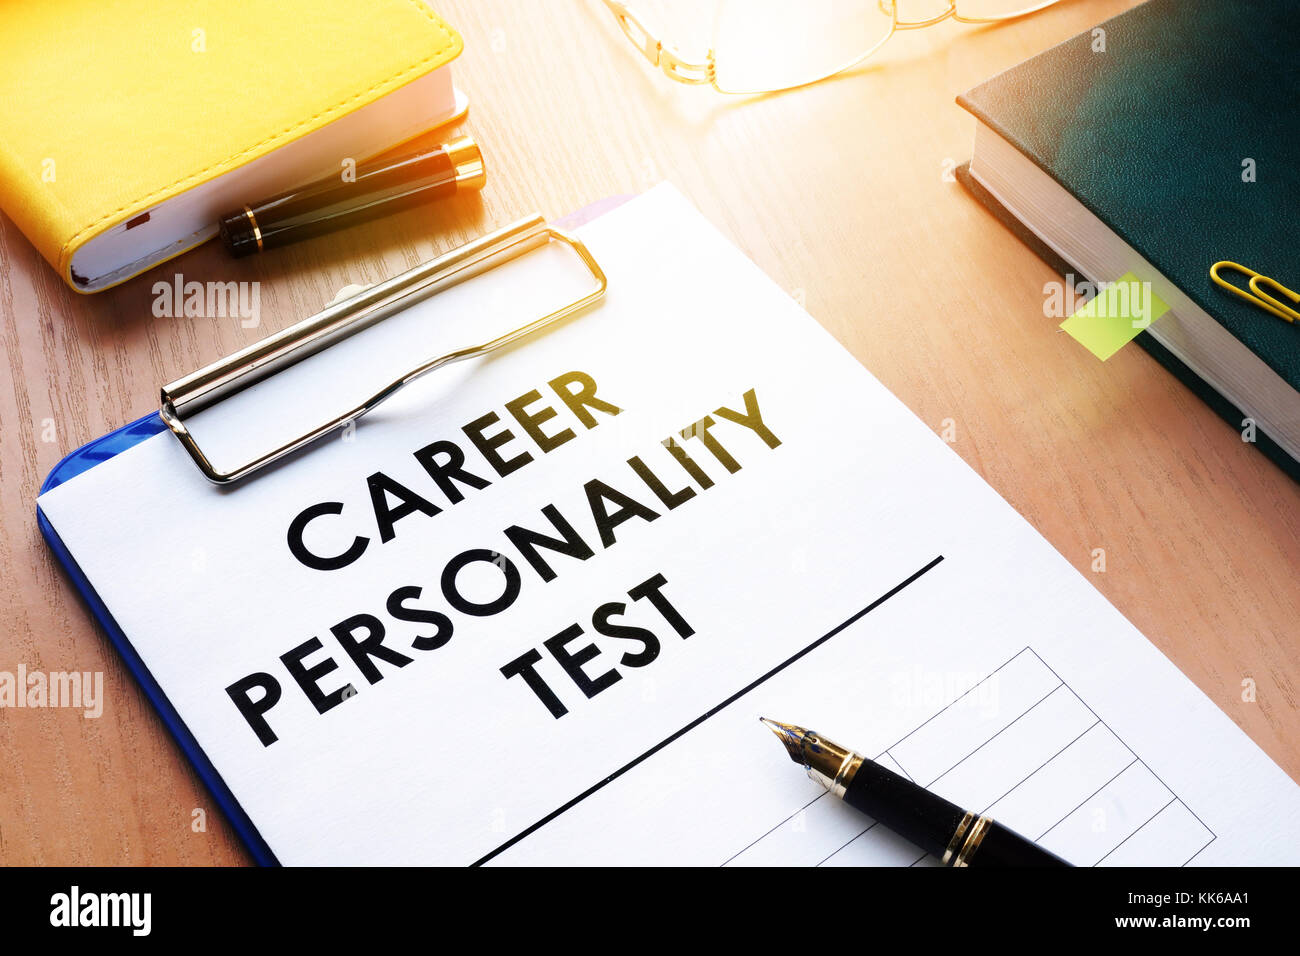 Clipboard with Career personality test on an office desk. Assessments concept. - Stock Image